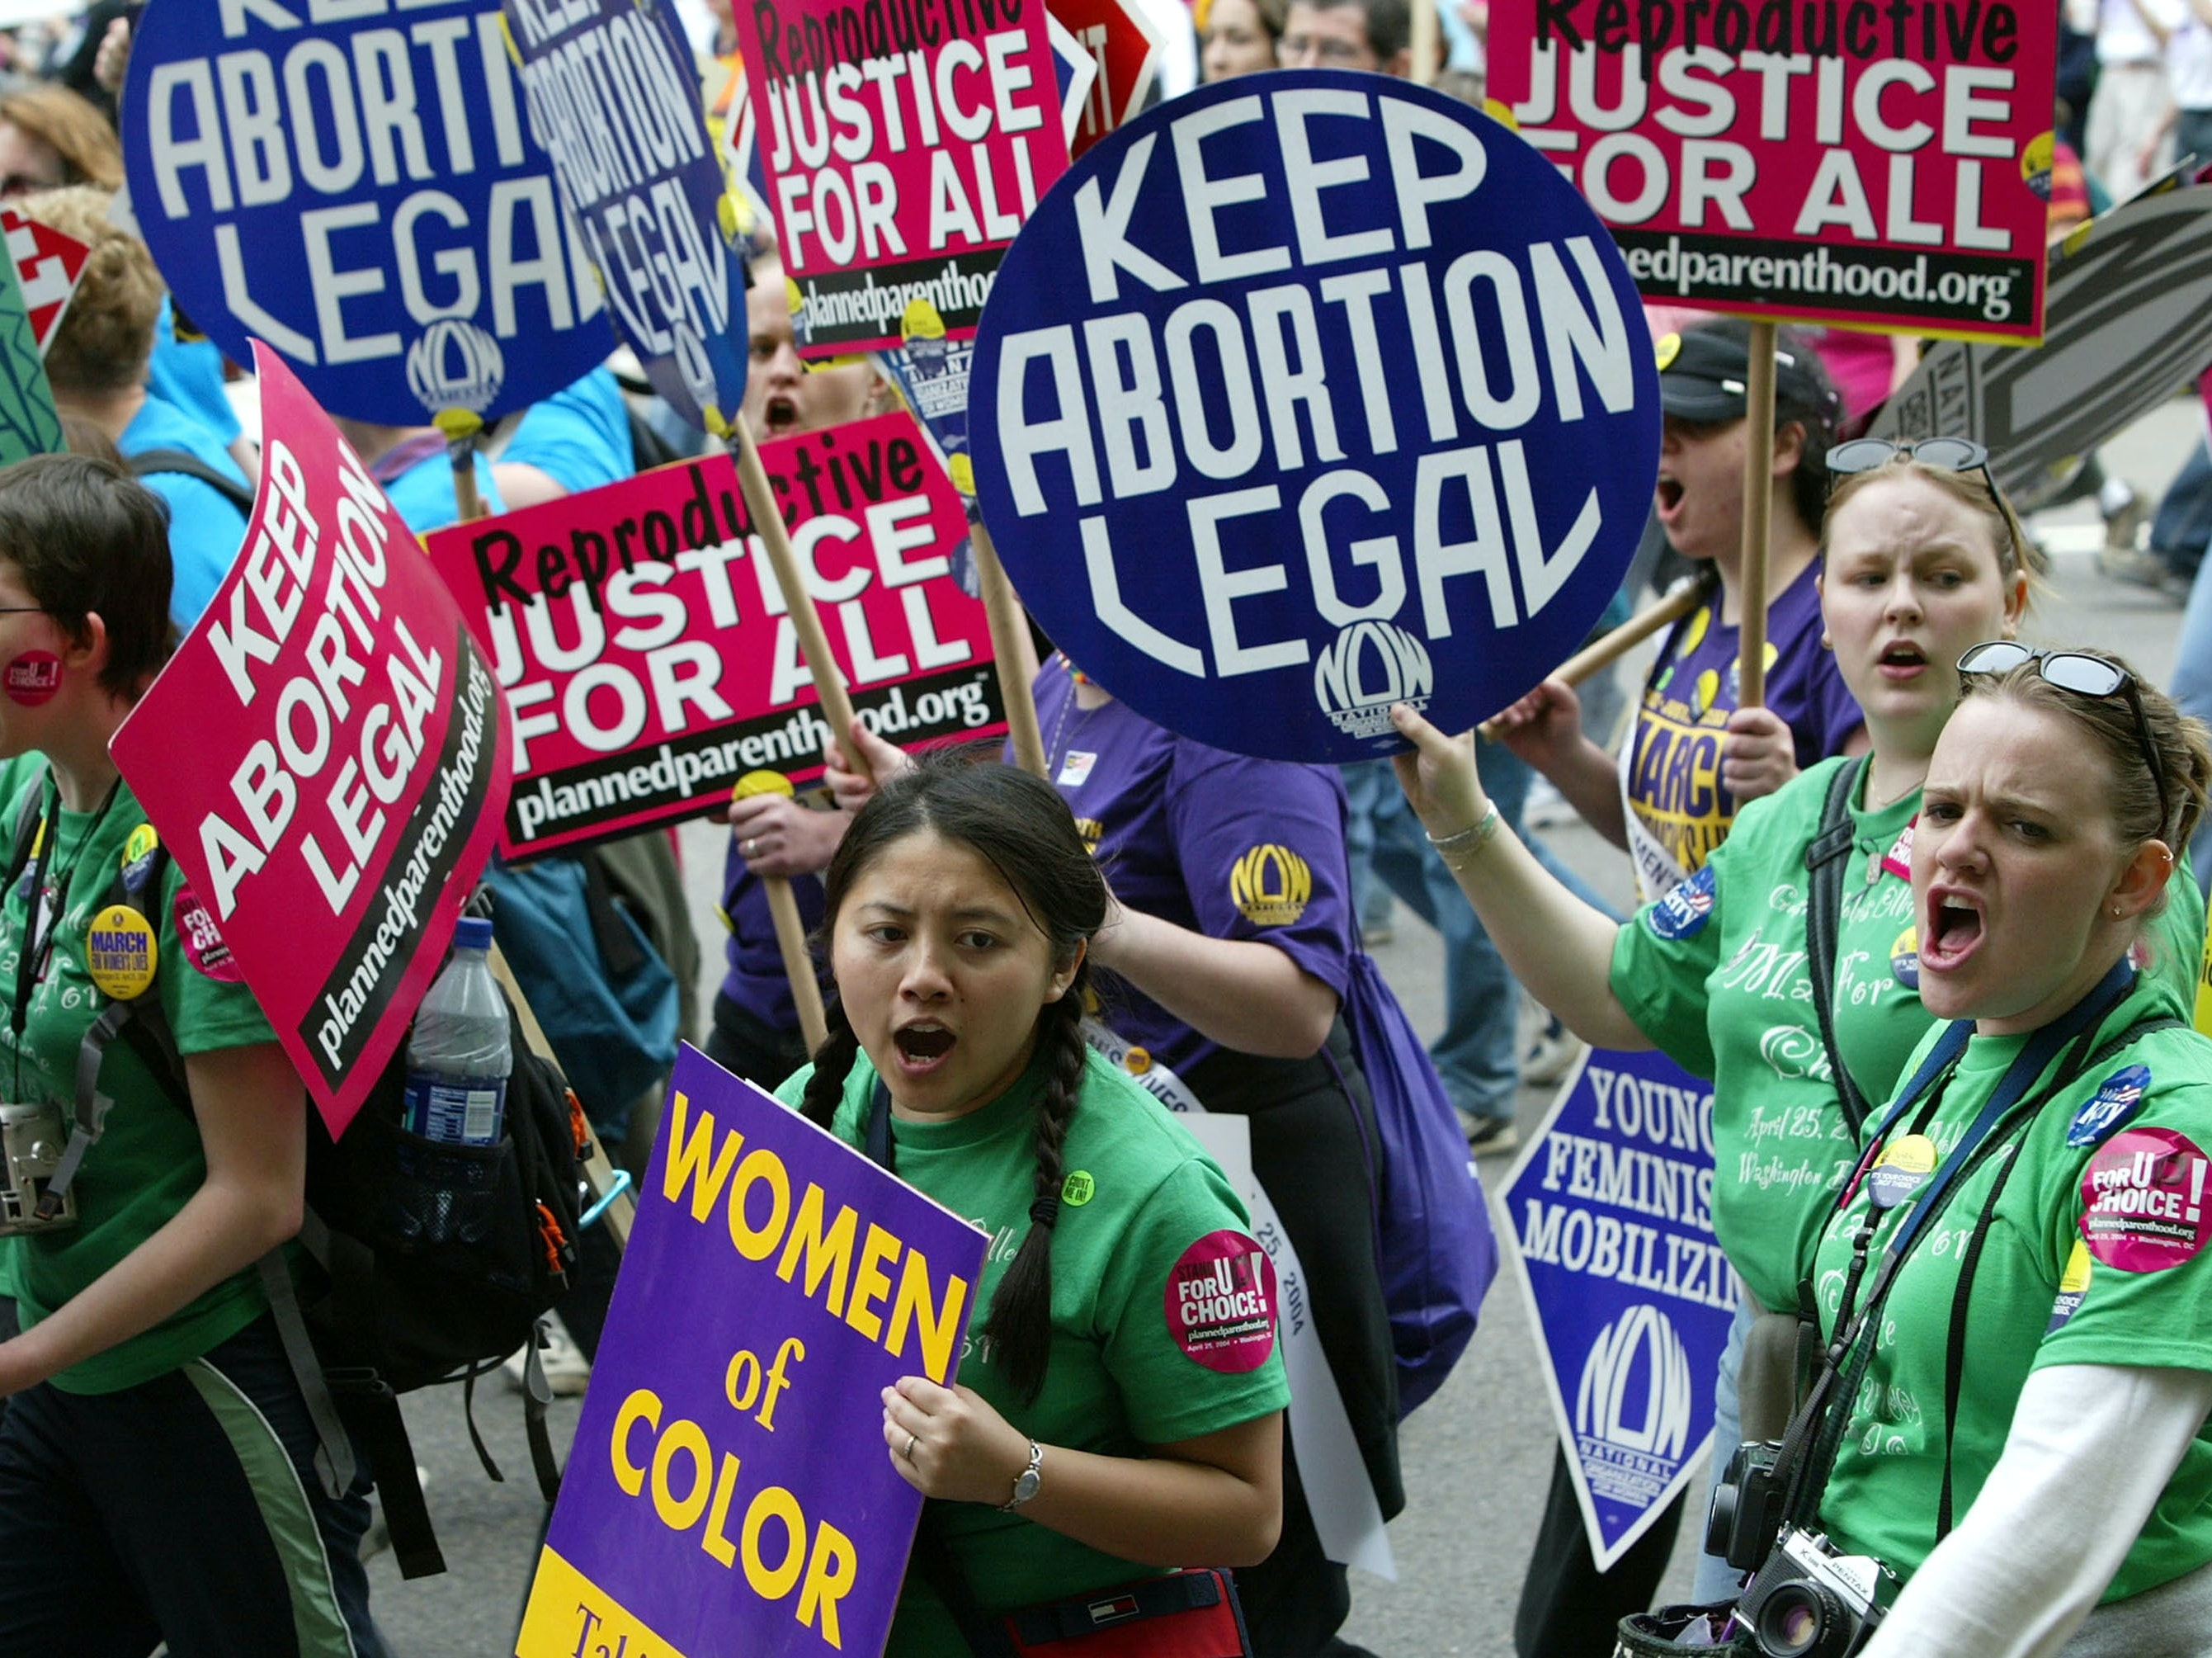 WASHINGTON - APRIL 25:  Pro-choice activists shout slogans as they take part in the March For Women's Lives April 25, 2004 in Washington, DC. Hundreds of thousands of activist demonstrated for abortion rights and opposition to the Bush Administration's policies on reproductive health issues.  (Photo by Alex Wong/Getty Images)